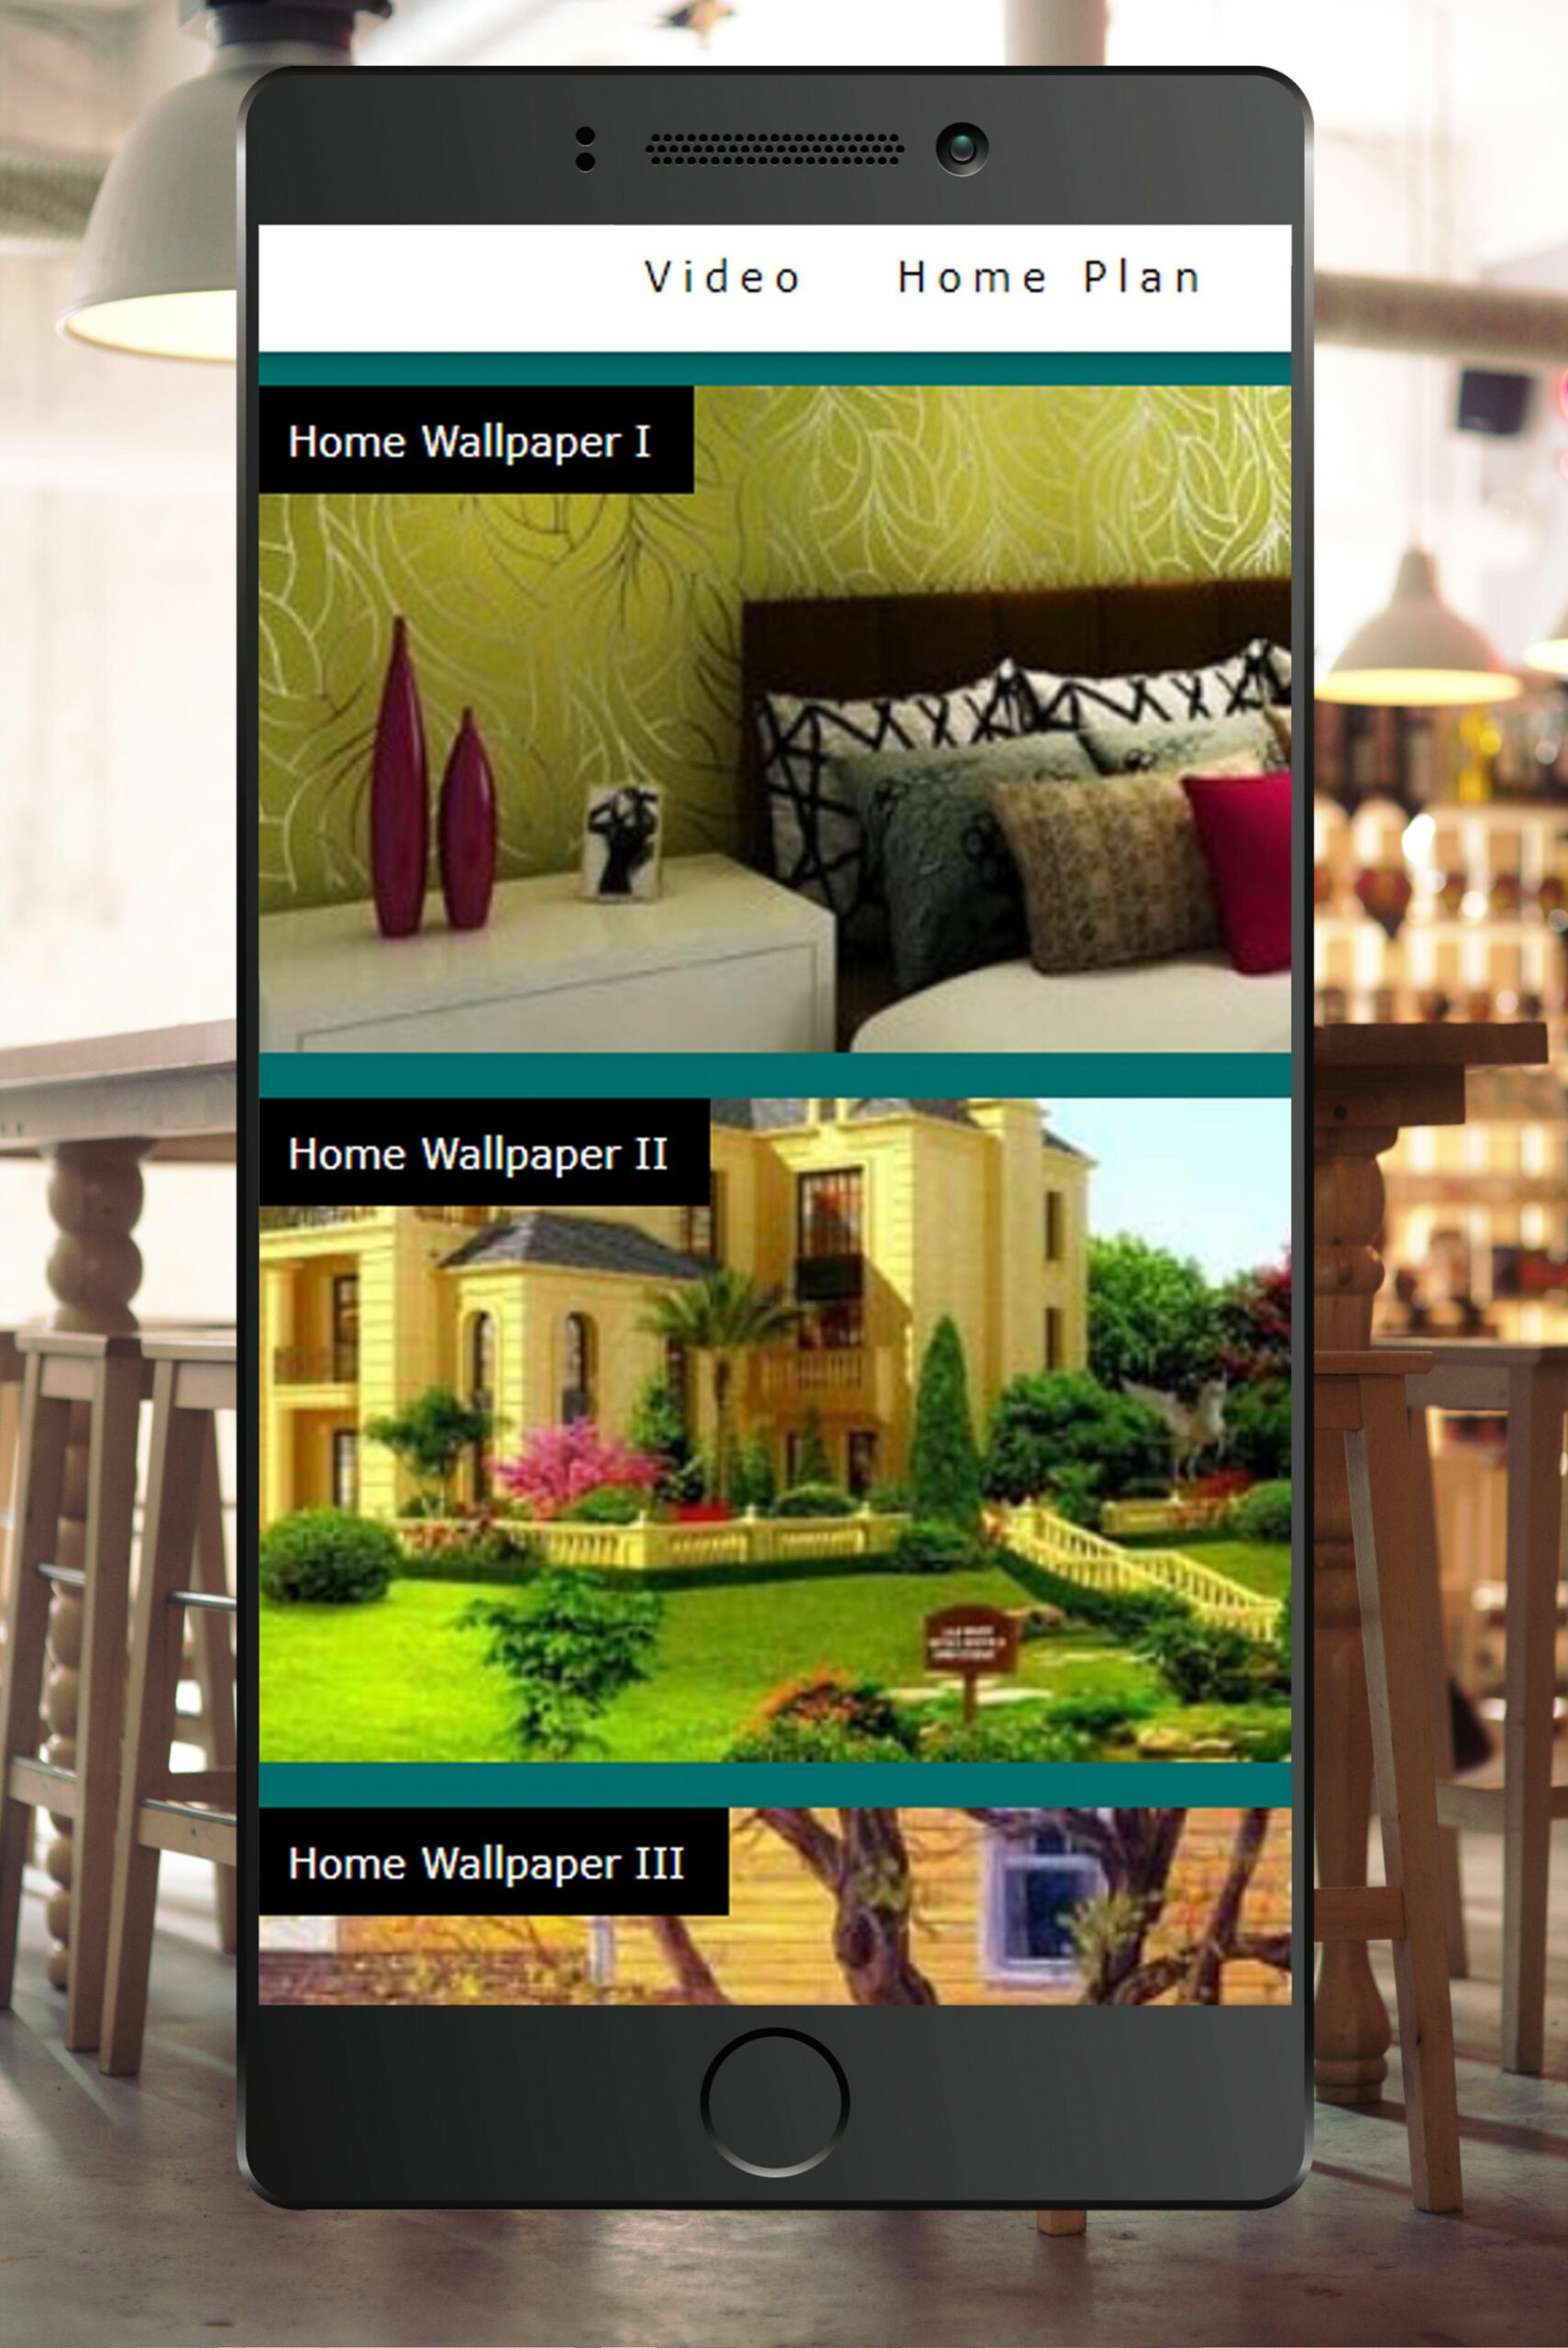 DIY Home: Design and Decoration Ideas for Android - APK Download